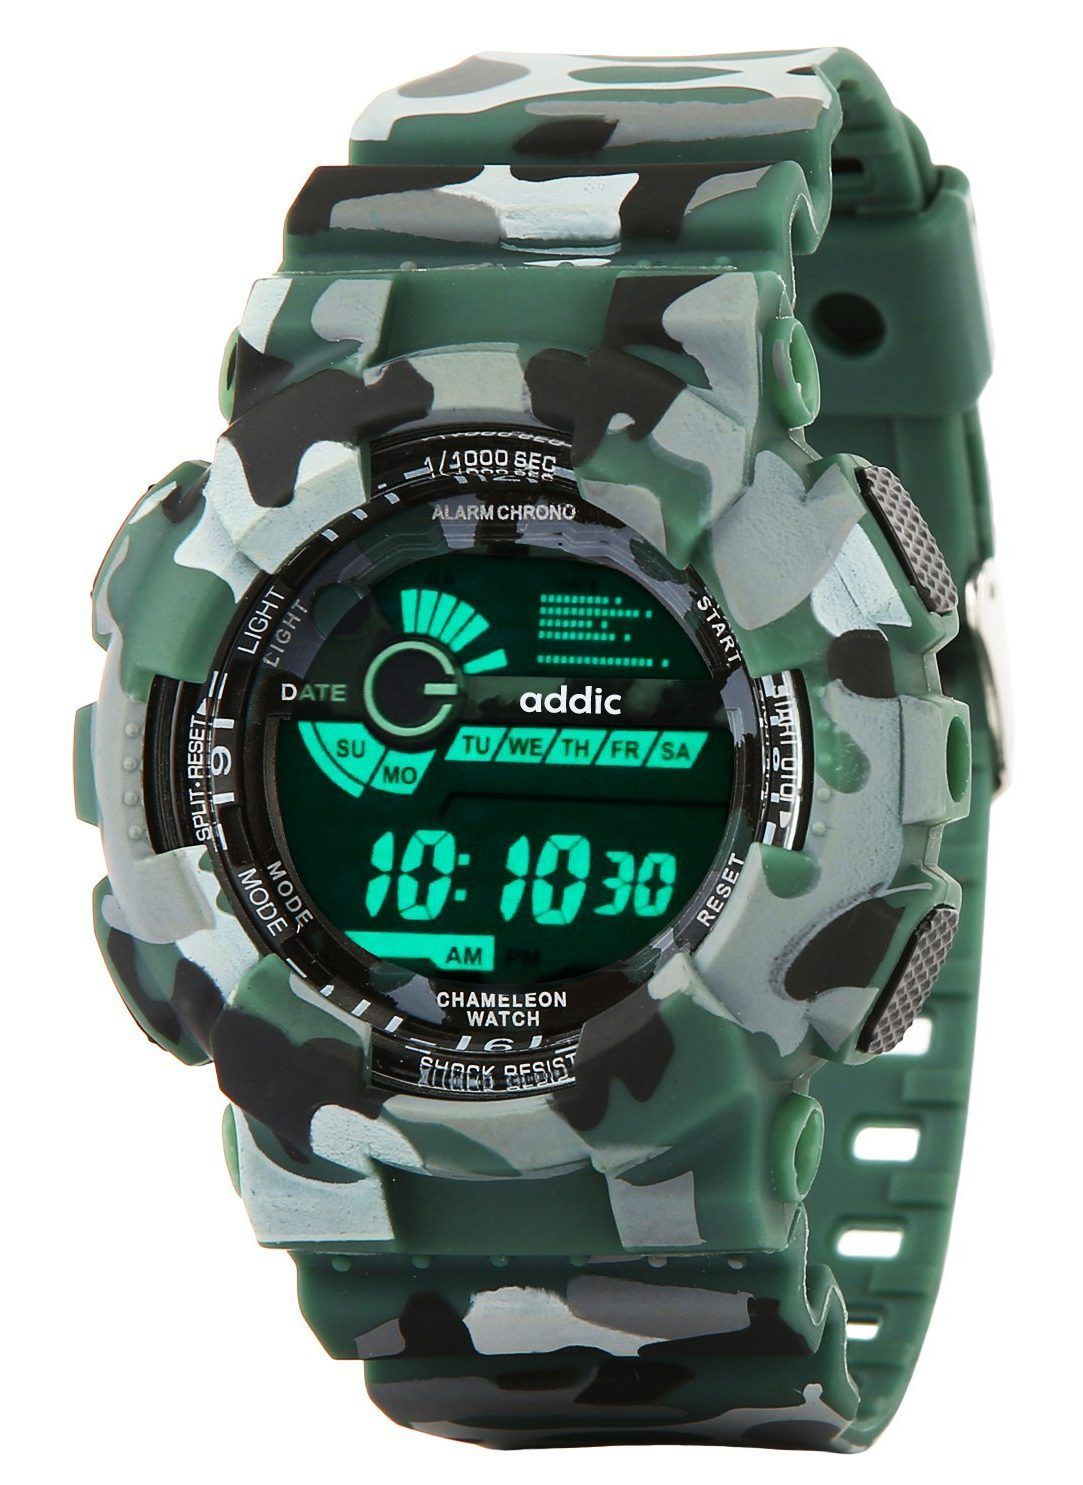 14f06d64ed0 Buy Army Green Digital Sports Addic Watches For Men Online at Best Prices  In India!  accessories  watches   watchesformen  manswatch   Fashionwatchesformen ...